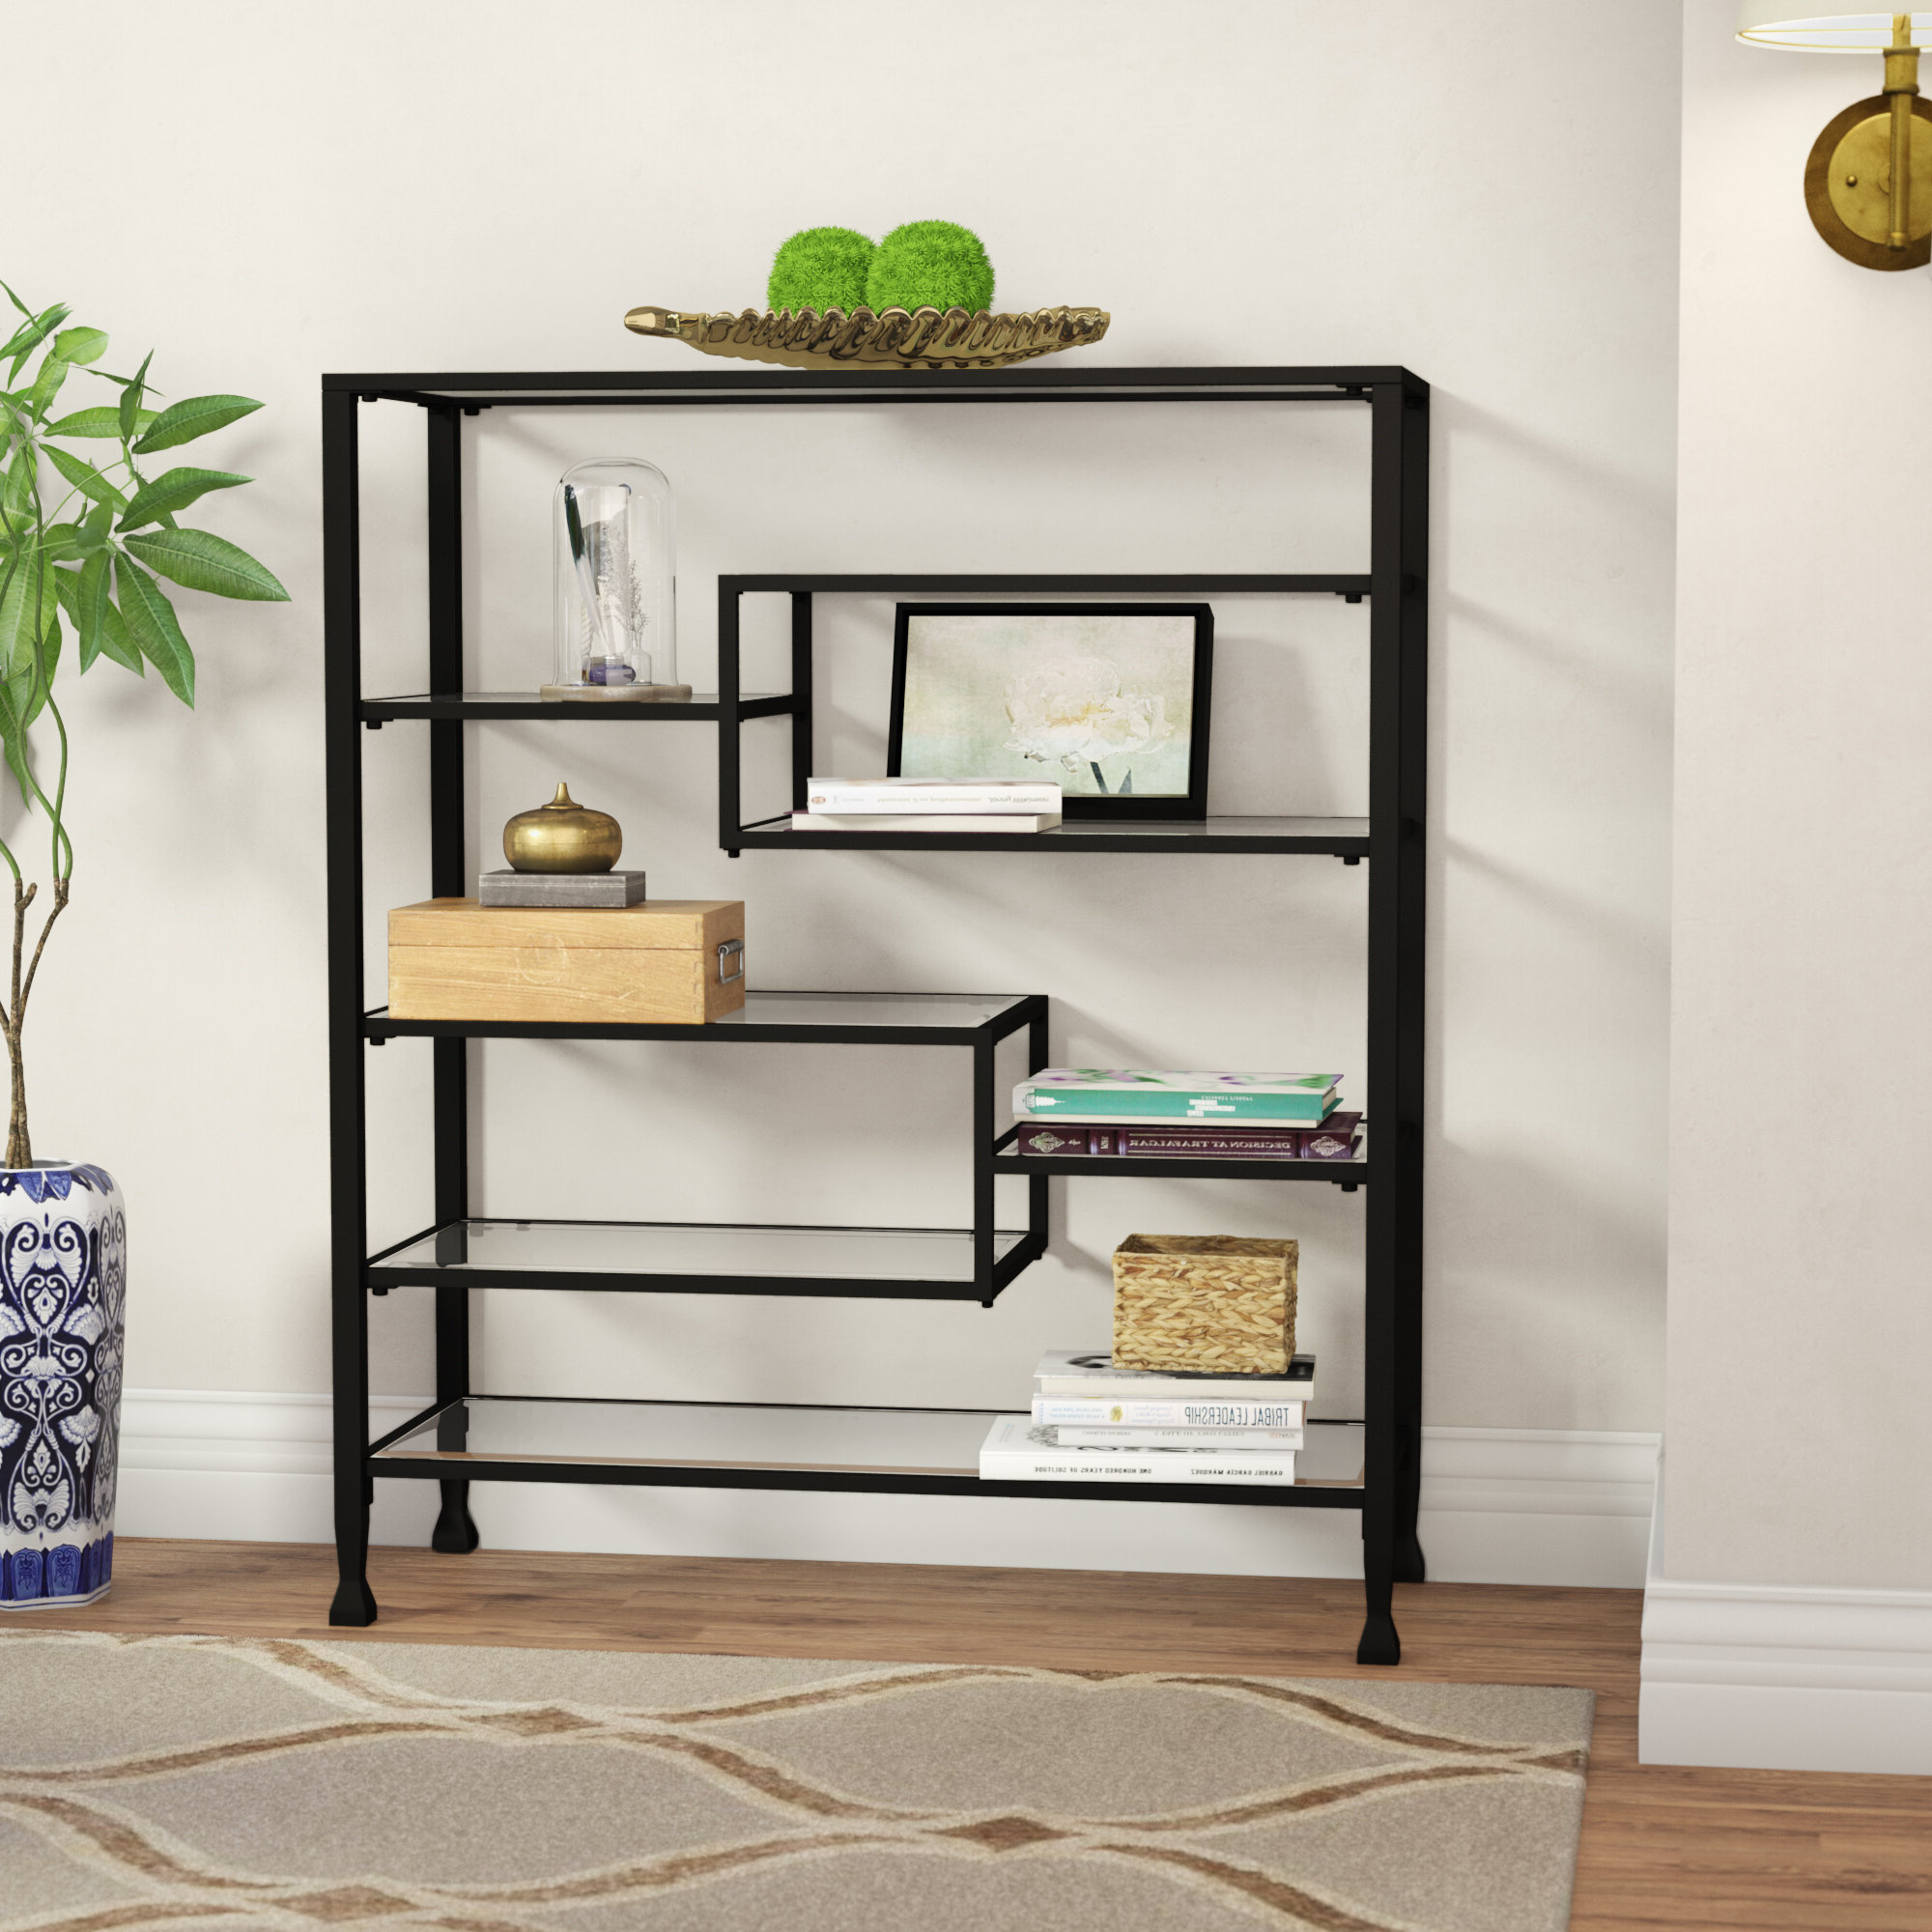 Rossman Etagere Bookcases Throughout Trendy Kenya Etagere Bookcase (View 18 of 20)